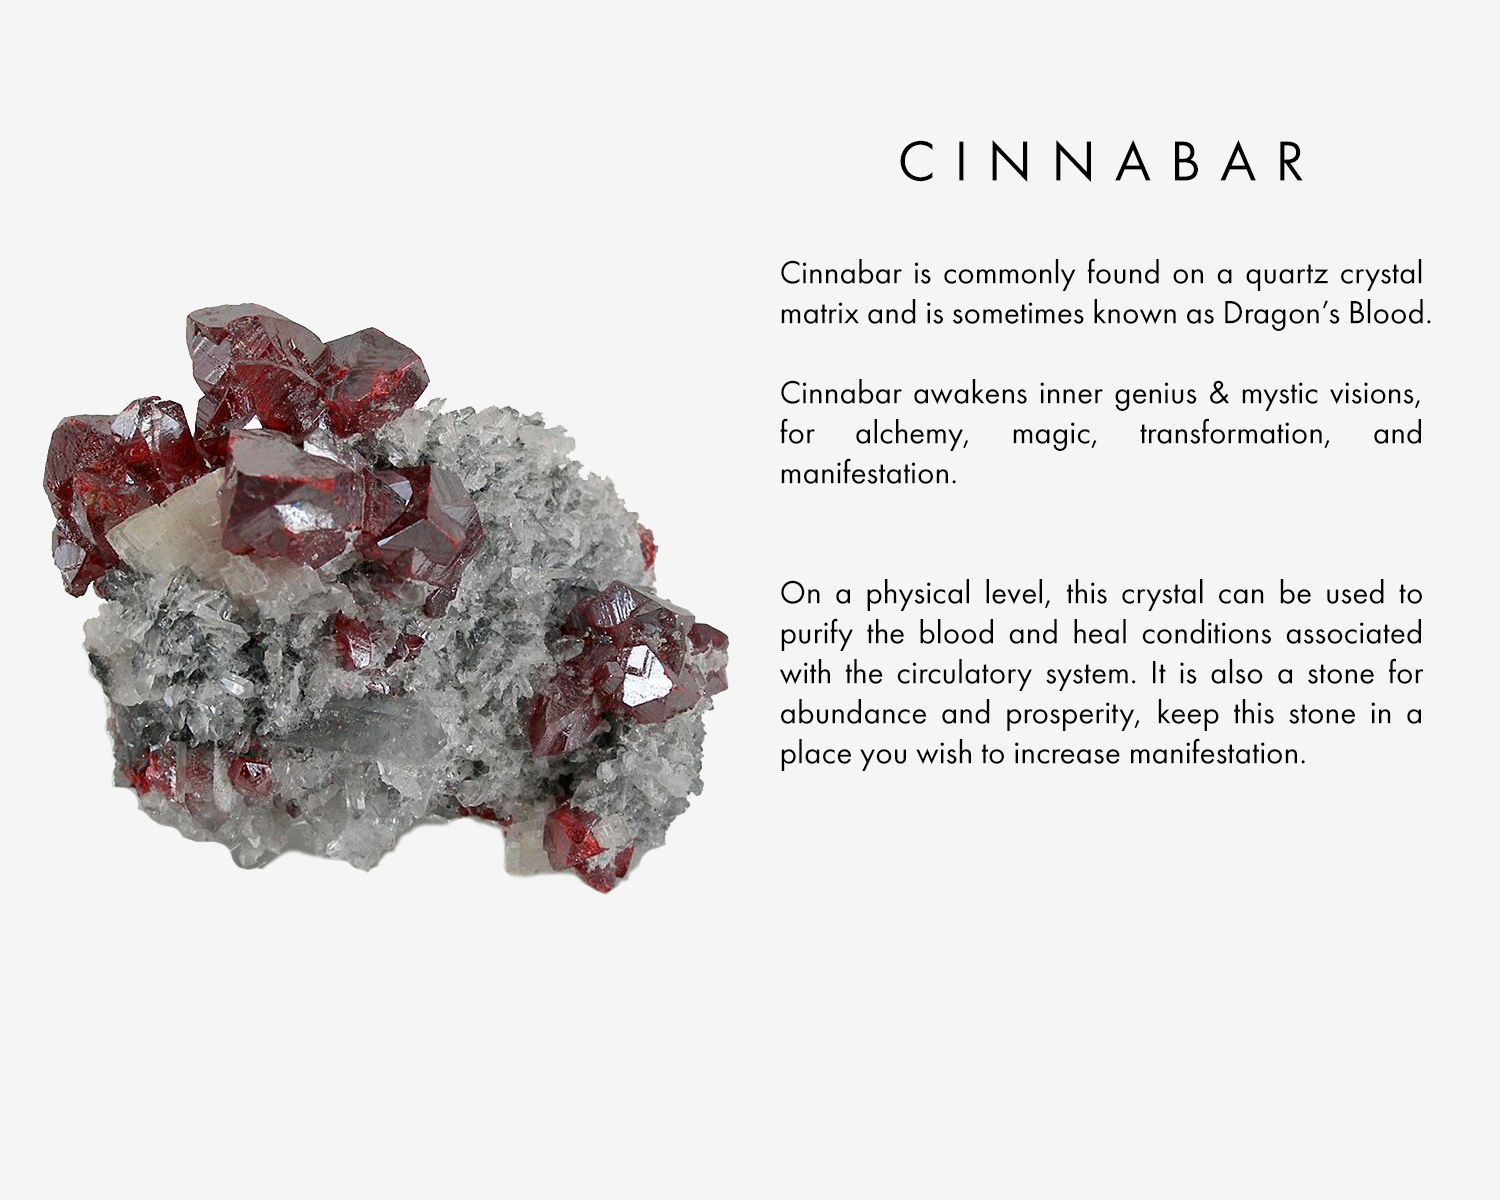 Cinnabar is commonly found on a quartz crystal matrix and is sometimes known as Dragon's Blood. Cinnabar awakens inner genius & mystic visions, for alchemy, magic, transformation, and manifestation. On a physical level, this crystal can be used to purify the blood and heal conditions associated with the circulatory system. It is also a stone for abundance and prosperity, keep this stone in a place you wish to increase manifestation.